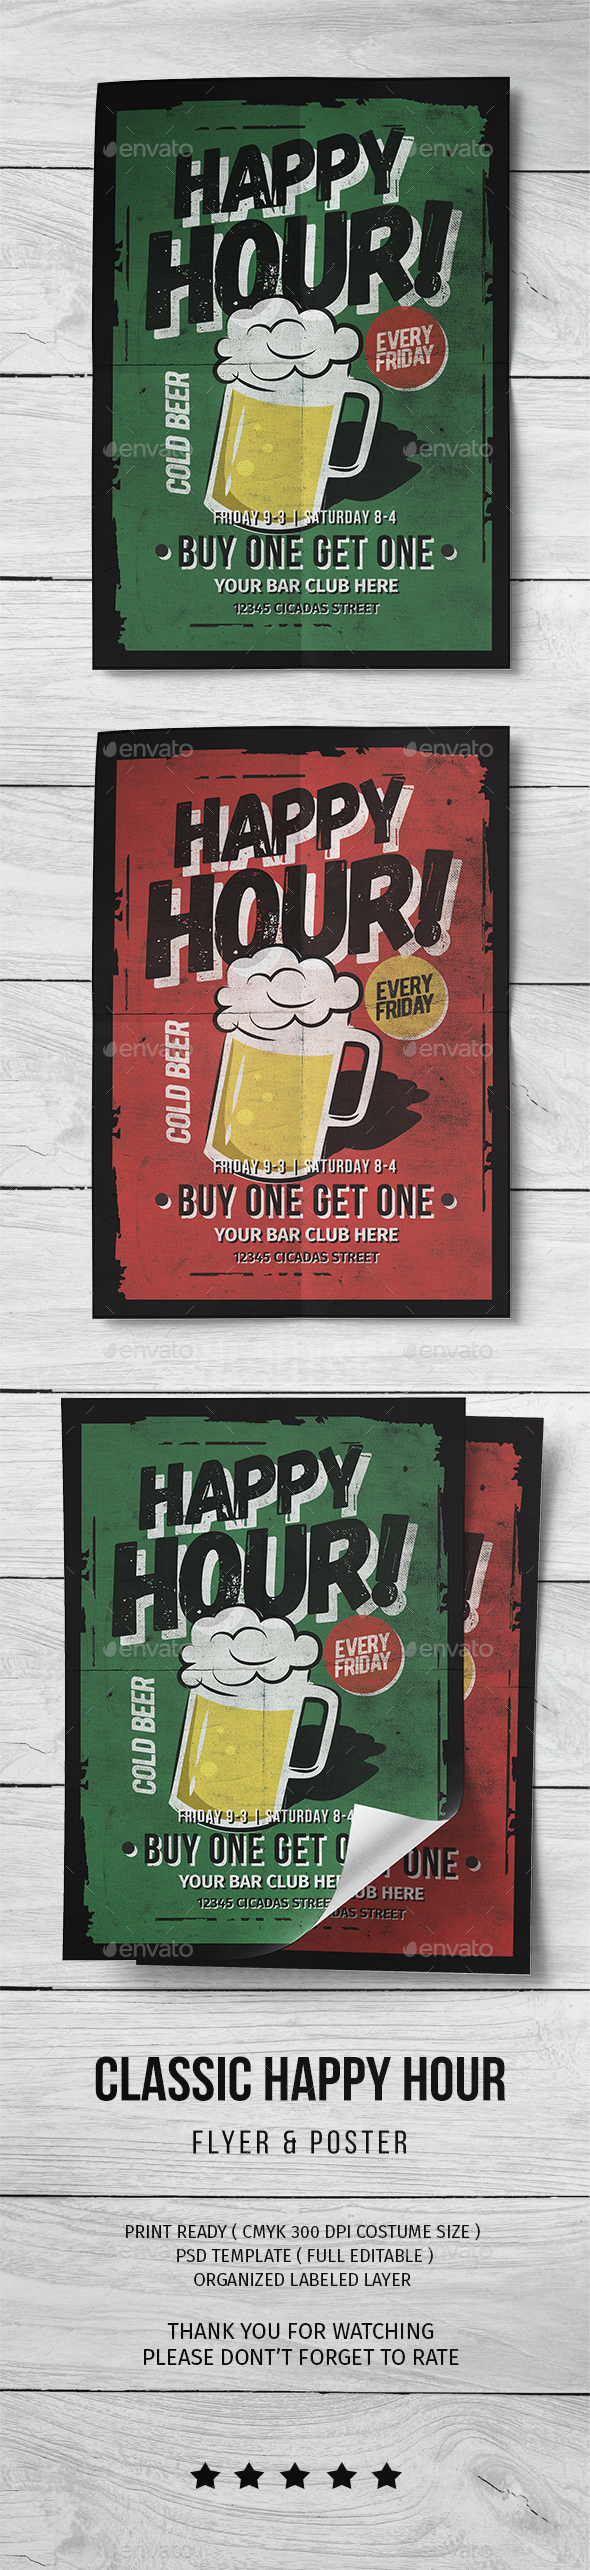 Classic Happy Hour Flyer - Flyers Print Templates